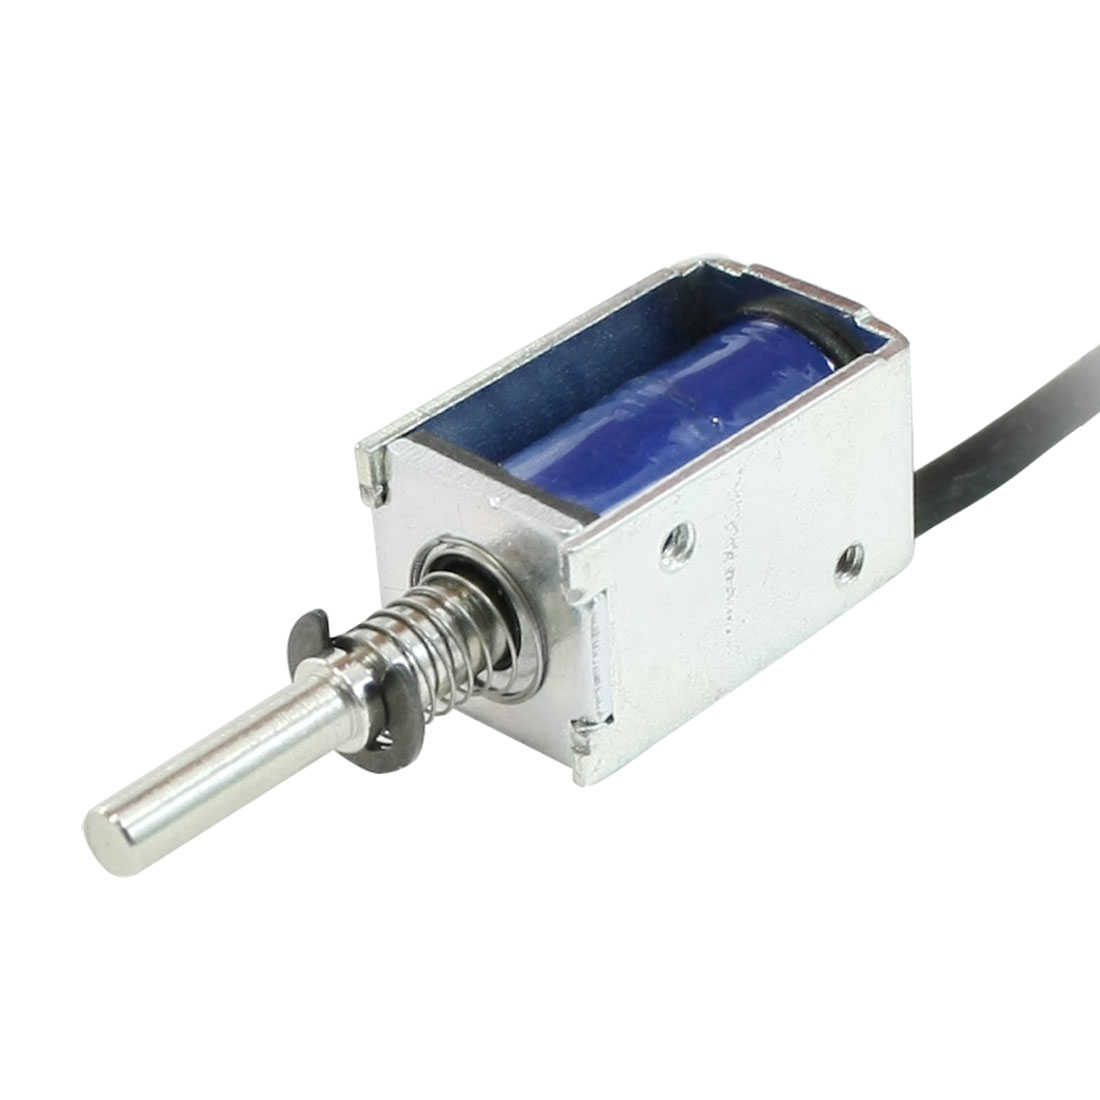 цена на UXCELL Pull Type Open Frame Actuator Electric Solenoid 12V 2Mm 100G 1N